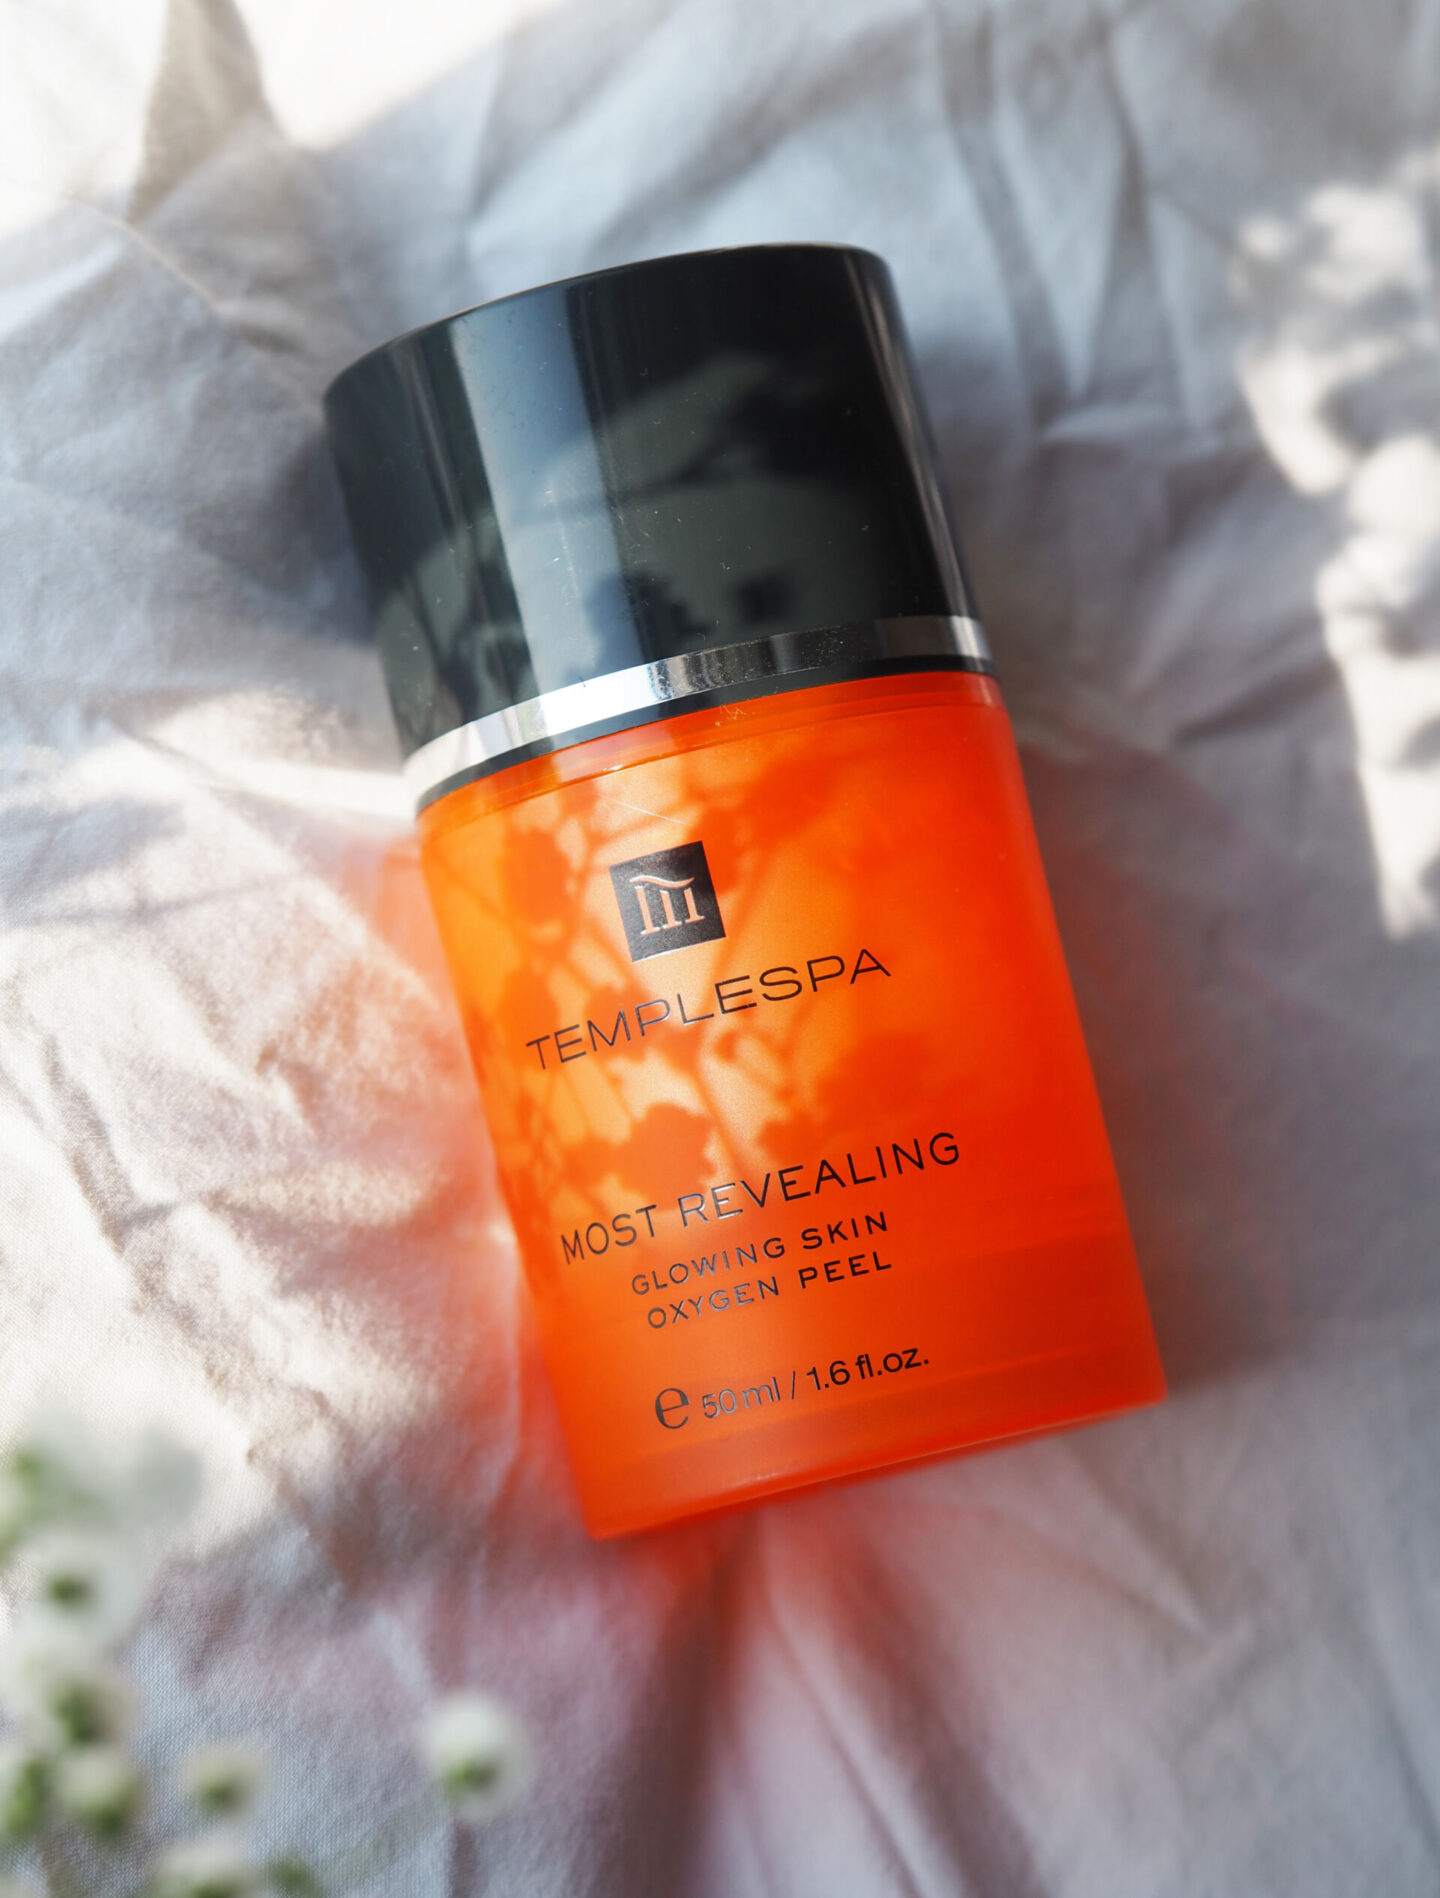 templespa most revealing glowing skin oxygen peel review